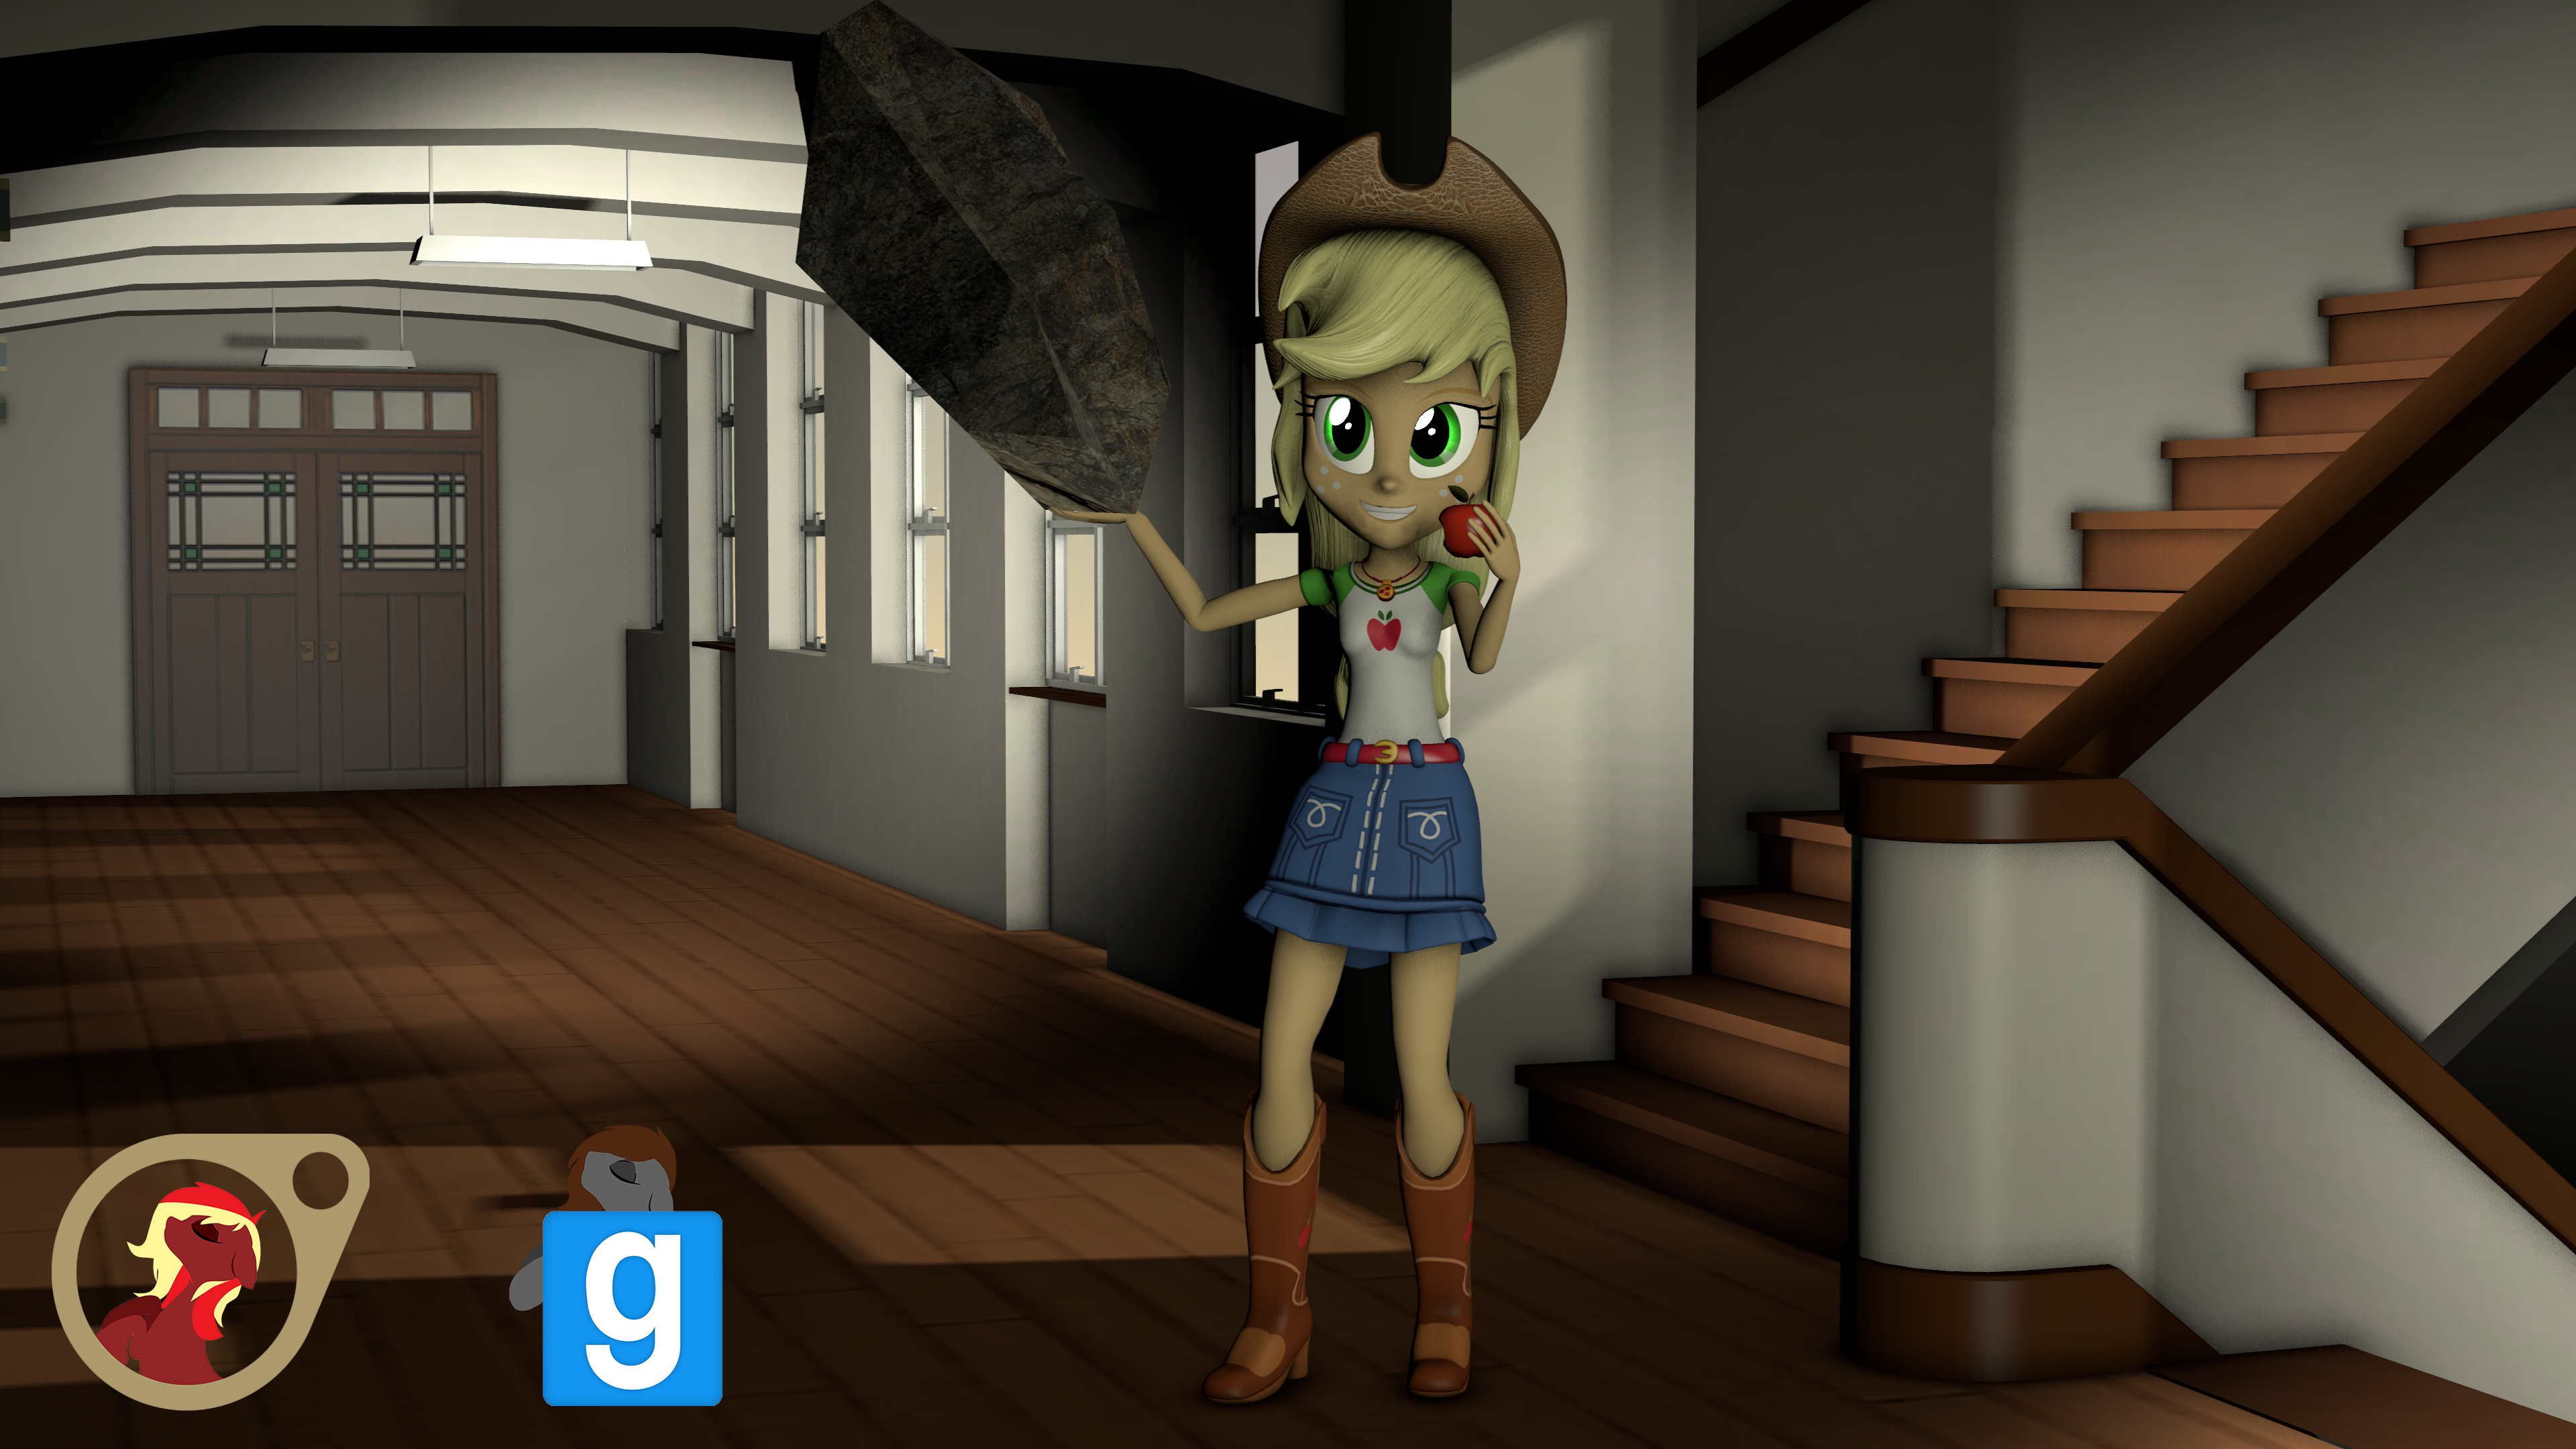 [EqG] Apple Jack from Shorts [SFM] [Gmod] by EmpireOfTime